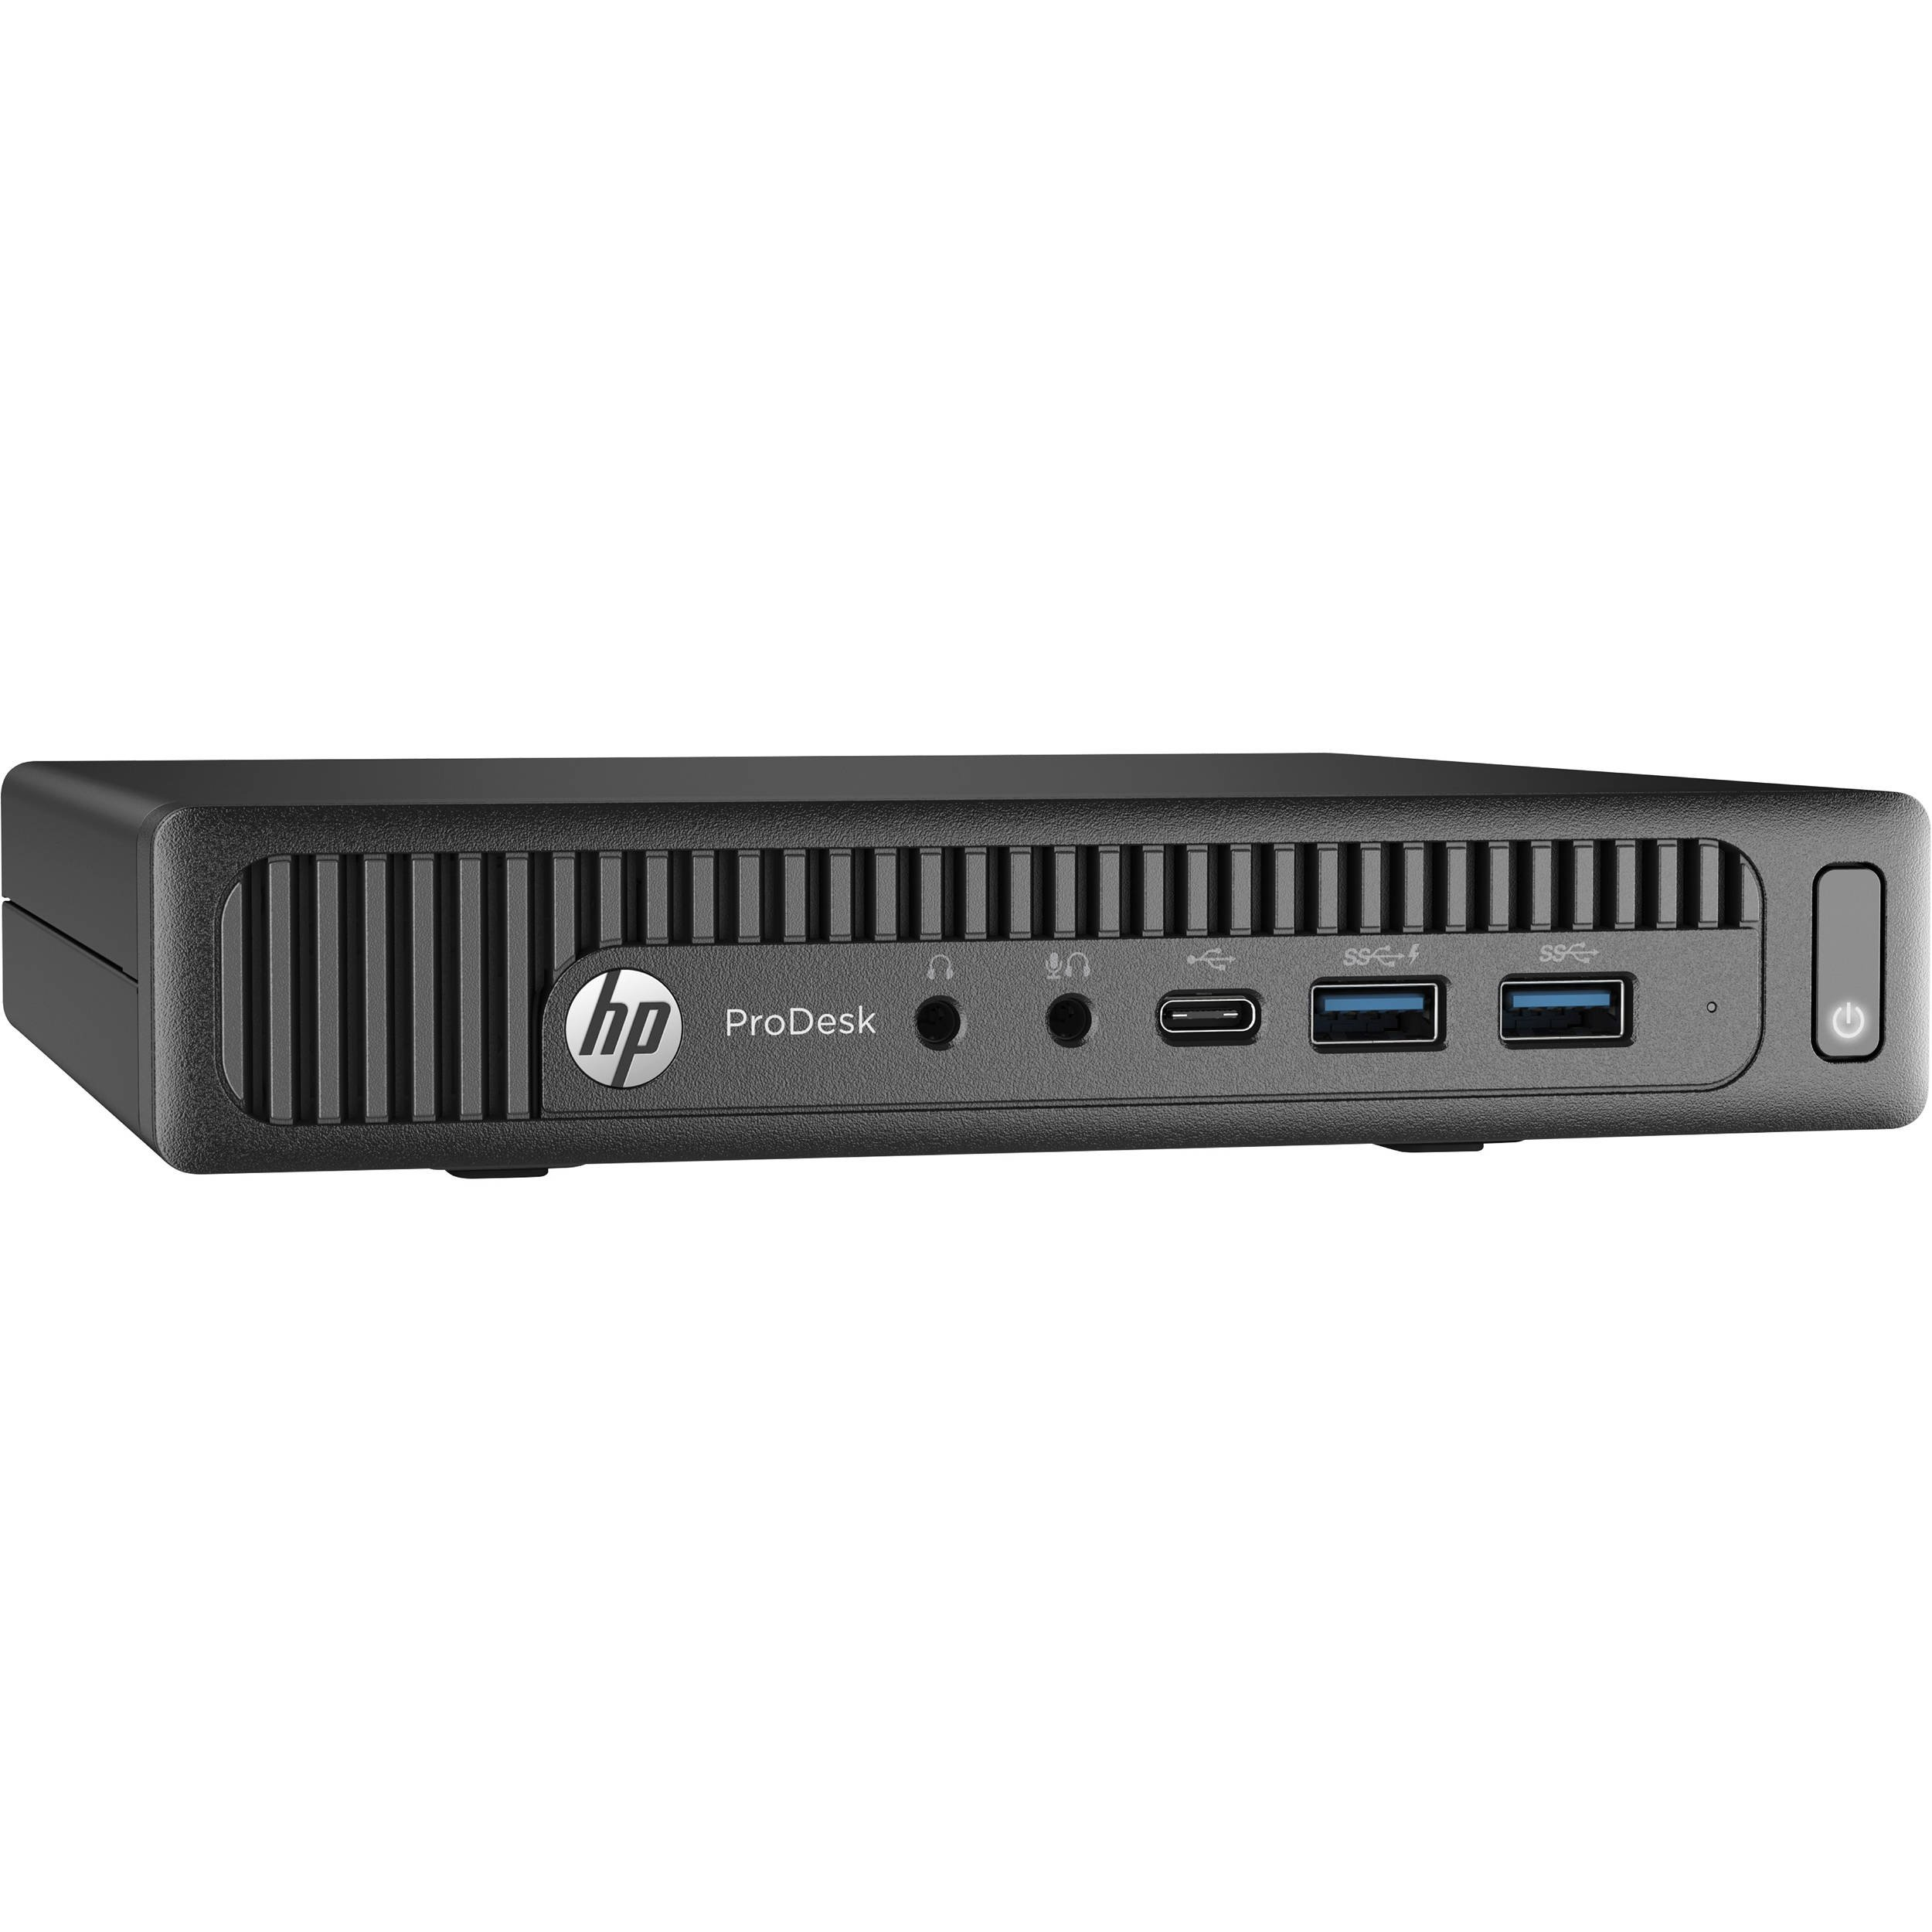 Máy mini HTPC HP EliteDesk 800 G2 Desktop Mini WIFI (cấu hình i5-6500T 3.1ghz /DDR4 8Gb)